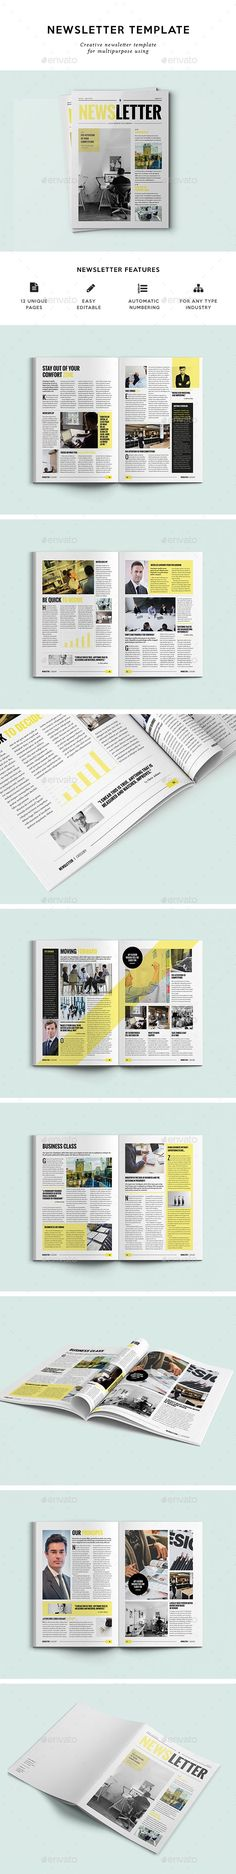 12 Pages Corporate Newsletter - Newsletters Print Templates Download here : https://graphicriver.net/item/12-pages-corporate-newsletter/16307550?s_rank=95&ref=Al-fatih